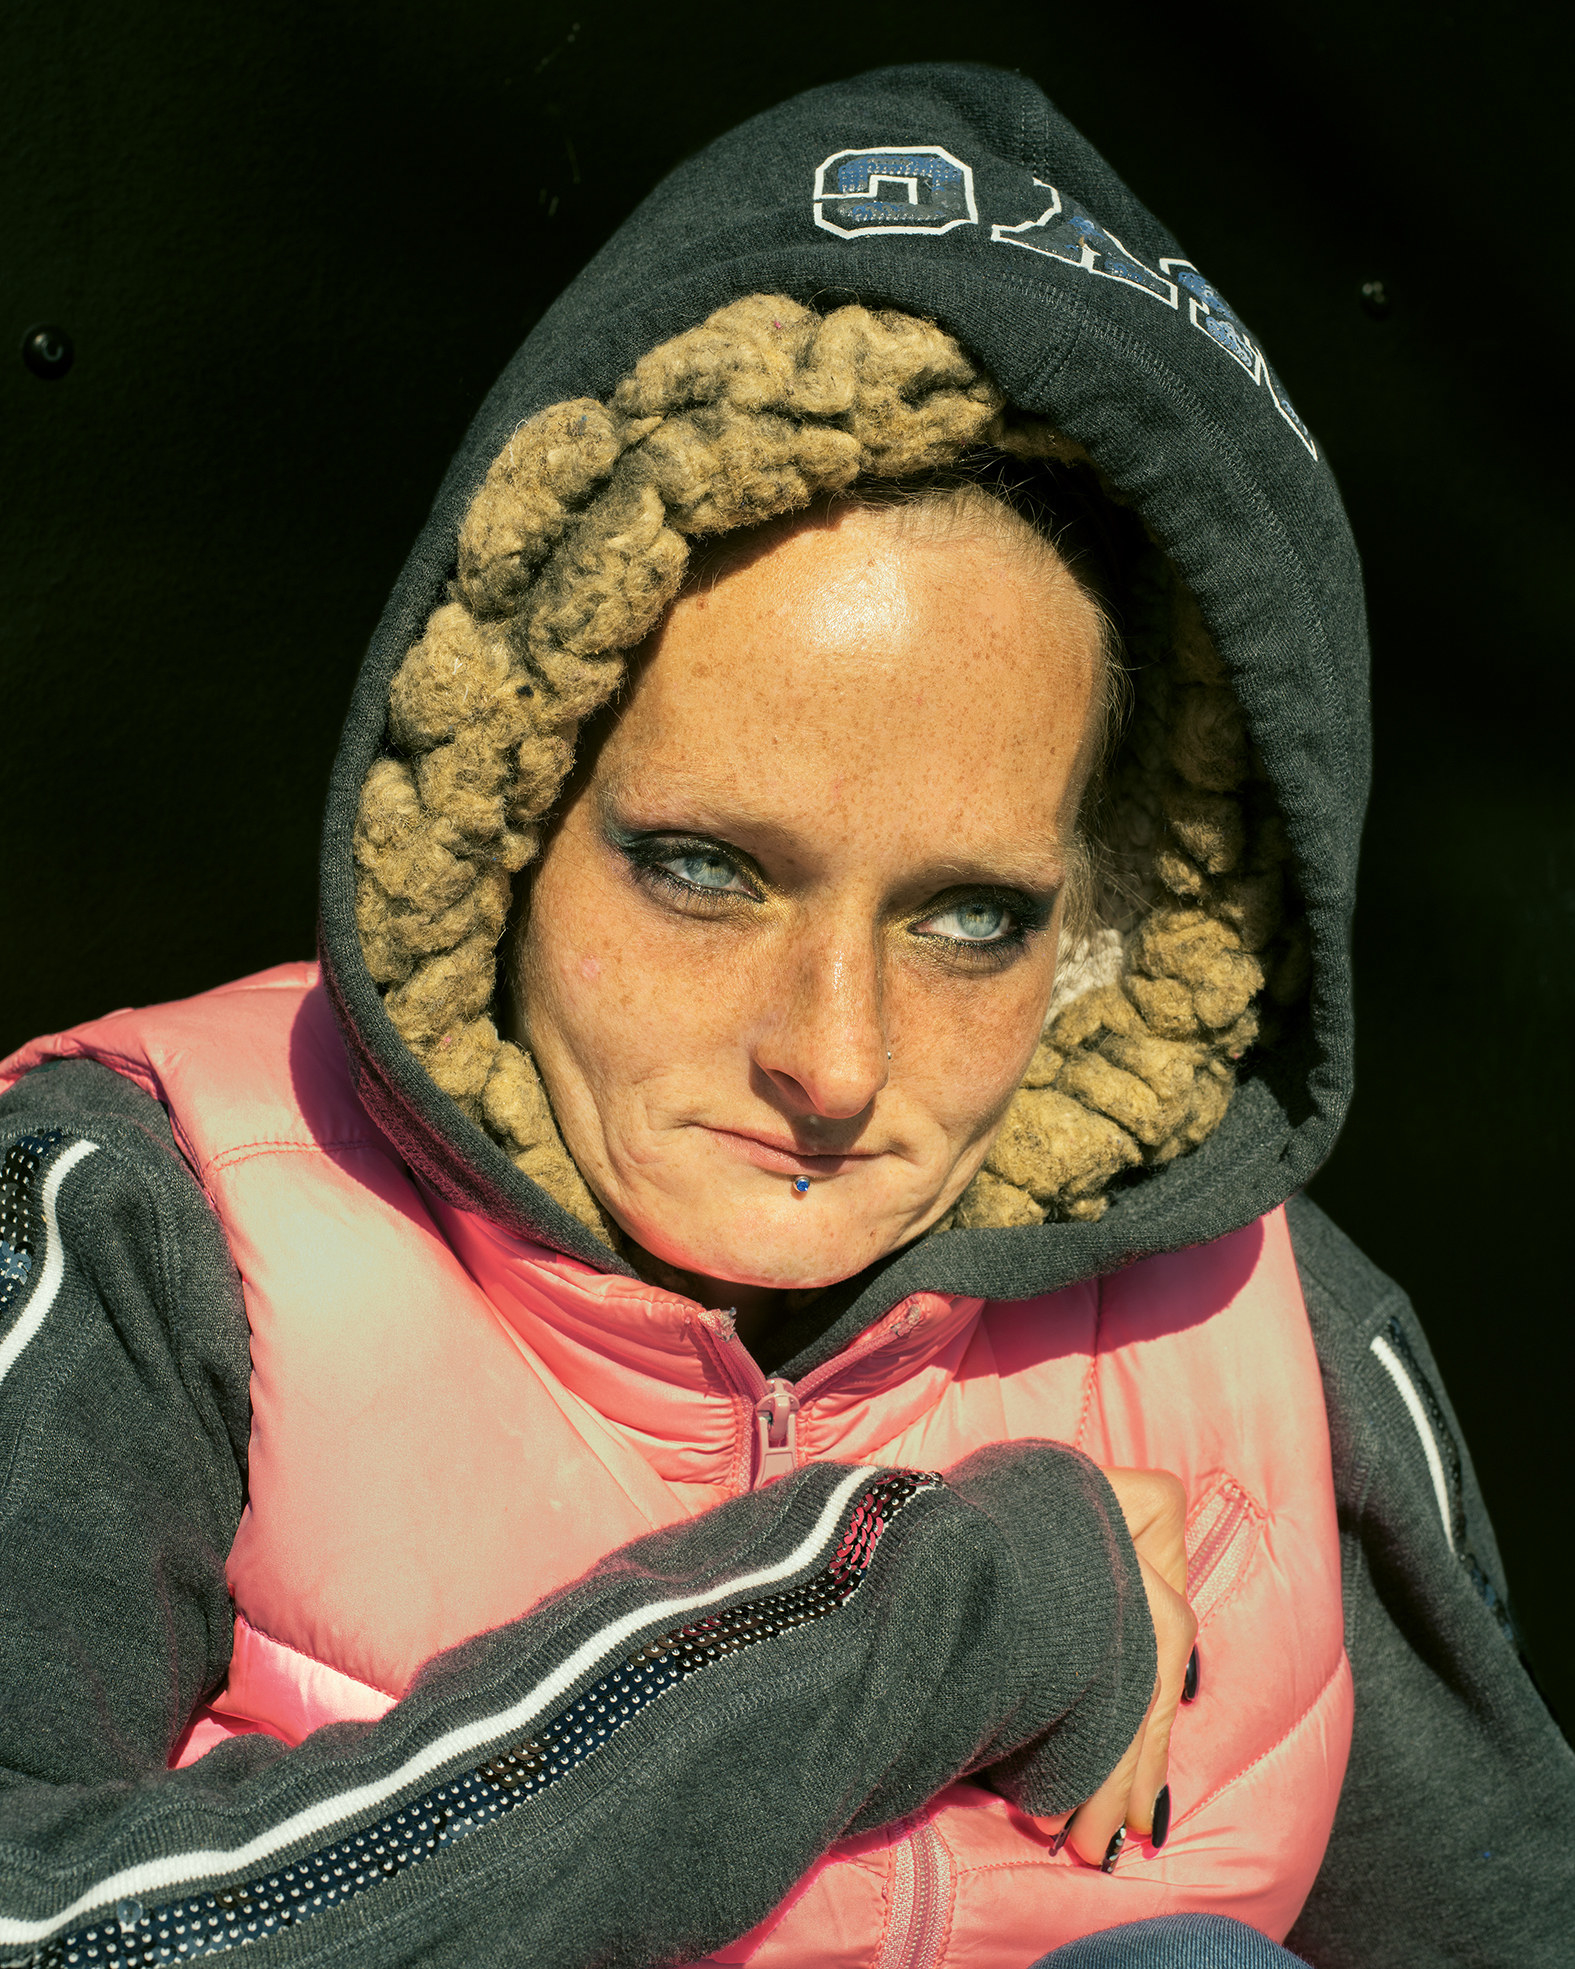 A woman in a hoodie and vest curls up into herself, looks out past the camera